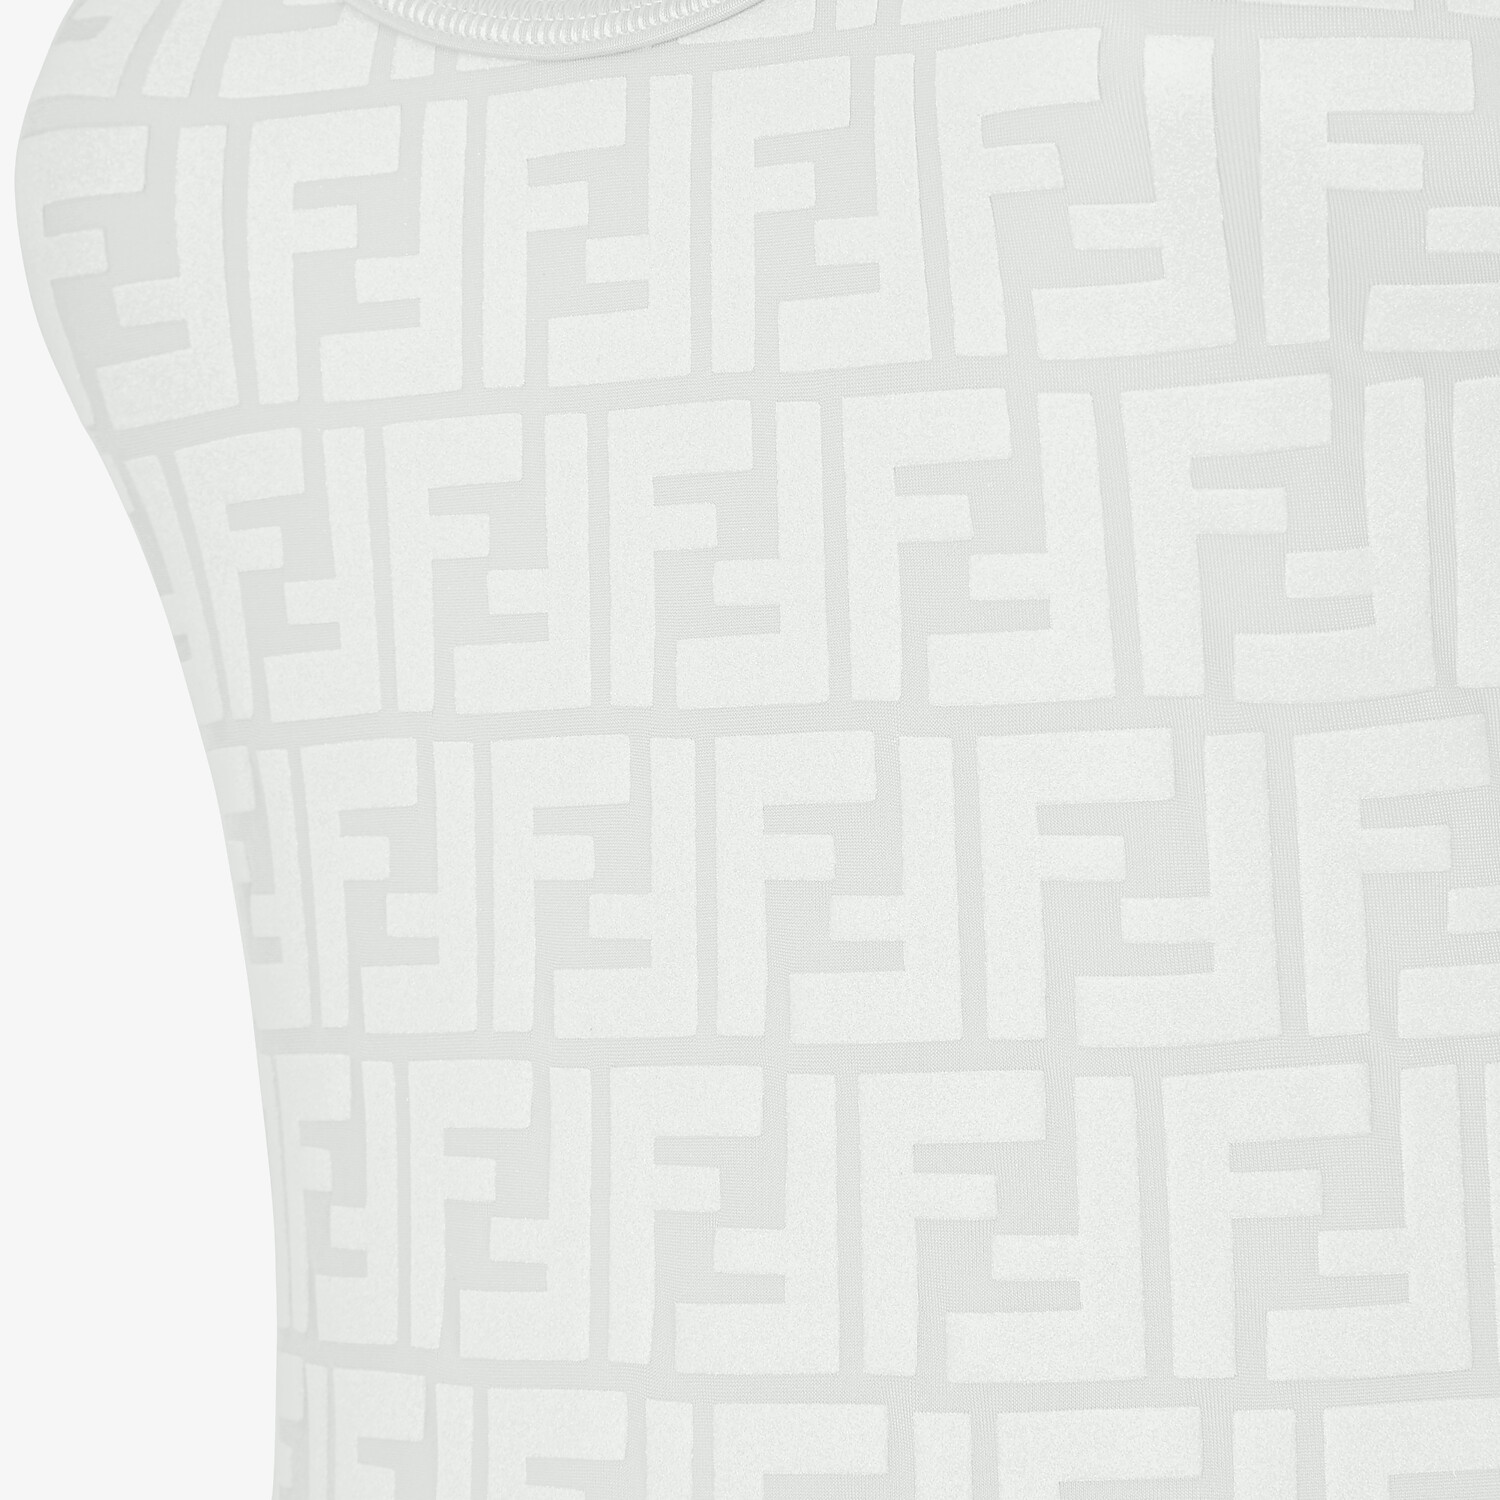 FENDI ONE-PIECE SWIMSUIT - White LYCRA® swimsuit - view 3 detail